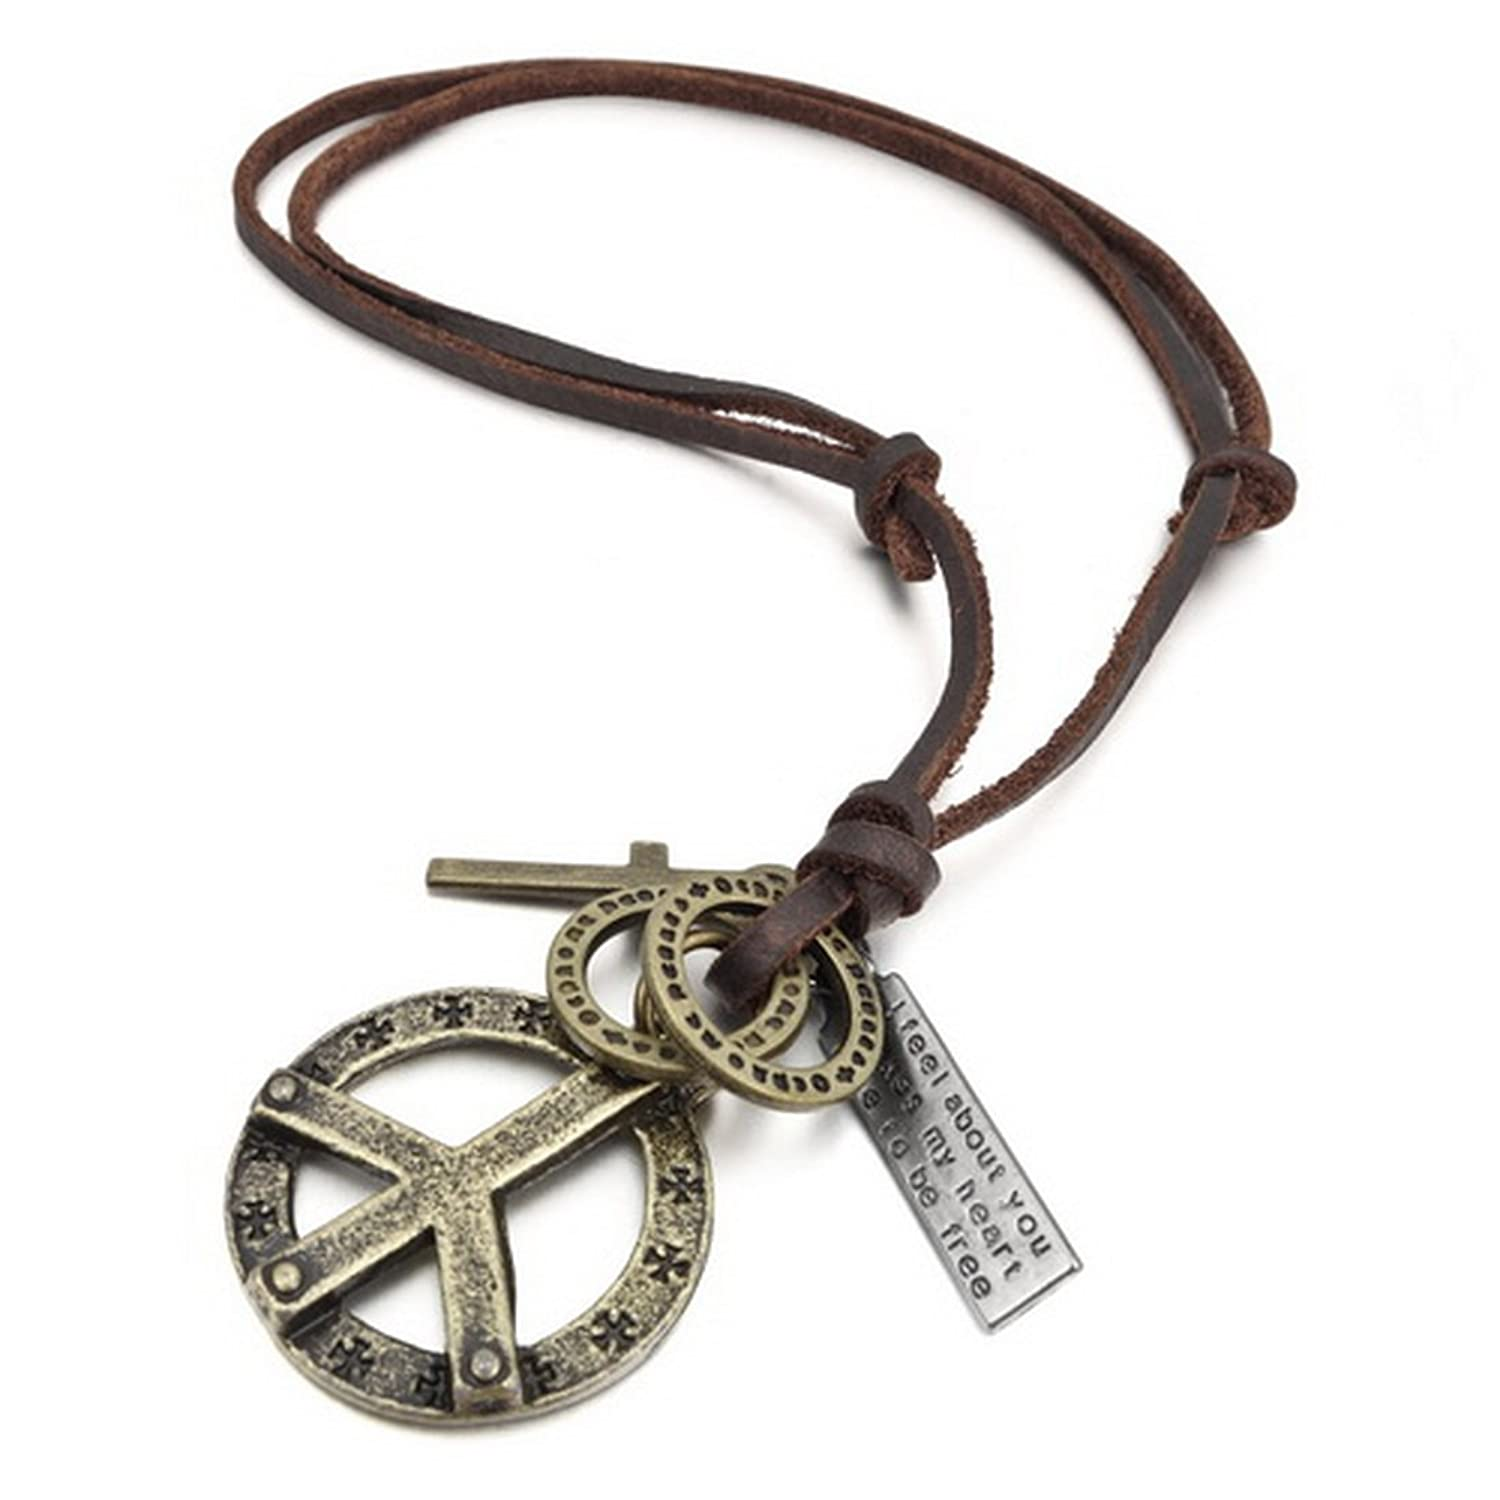 Amazon inblue mens alloy genuine leather pendant necklace amazon inblue mens alloy genuine leather pendant necklace gold tone cross peace sign adjustable 1626 inch chain jewelry mozeypictures Choice Image